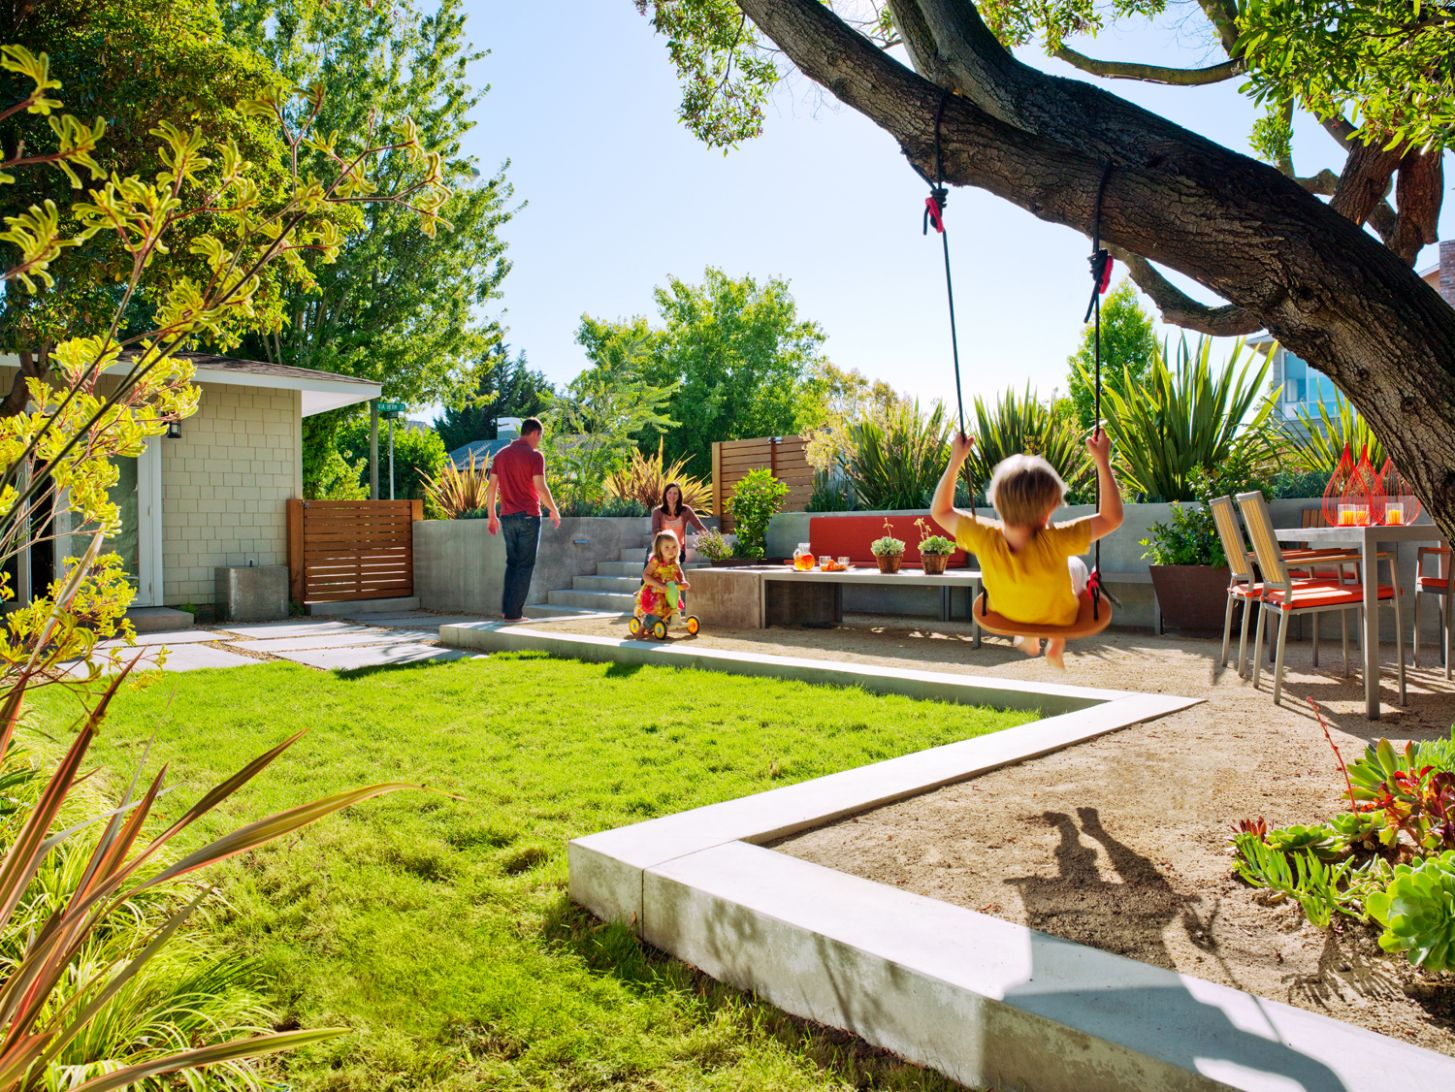 Awesome Backyard Ideas for Kids - Sunset Magazine - garden ideas for kids